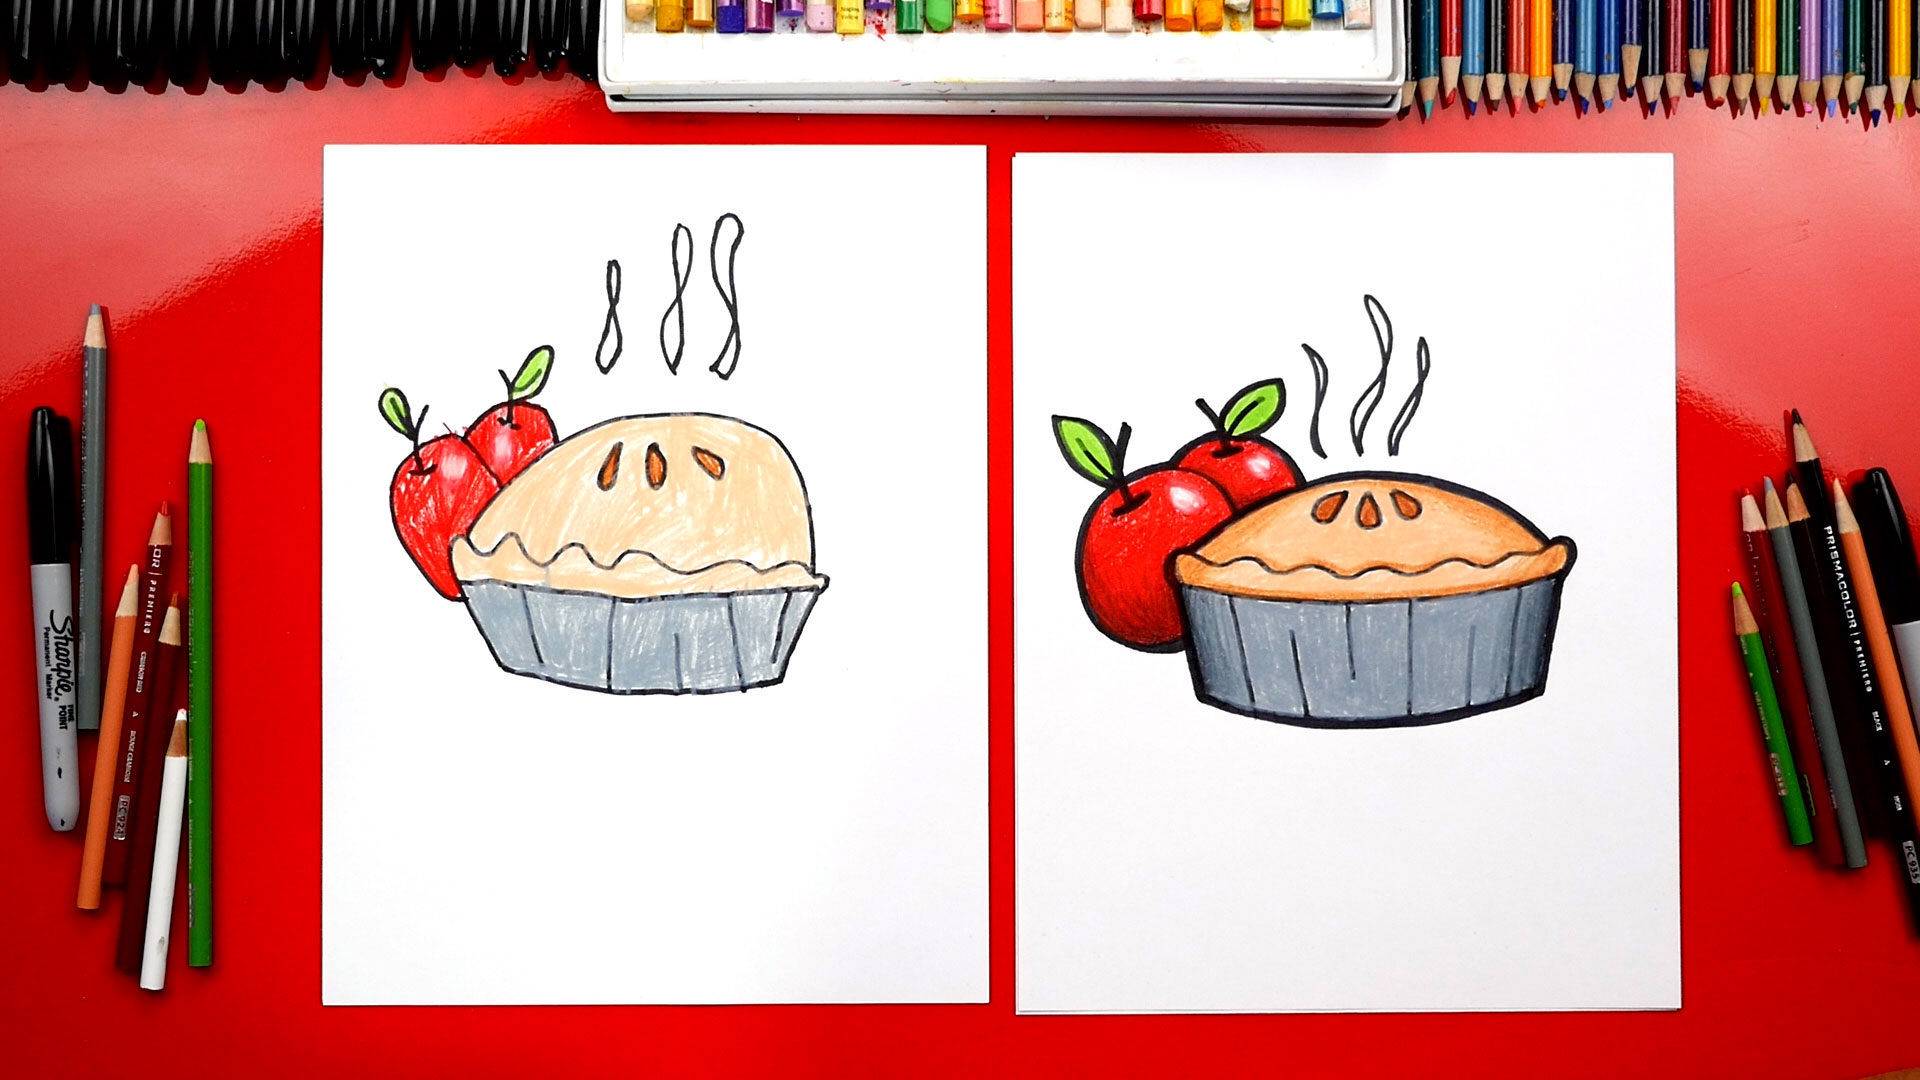 Pie tin bakeware clipart sketch side svg black and white download How To Draw An Apple Pie For Thanksgiving - Art For Kids Hub - svg black and white download